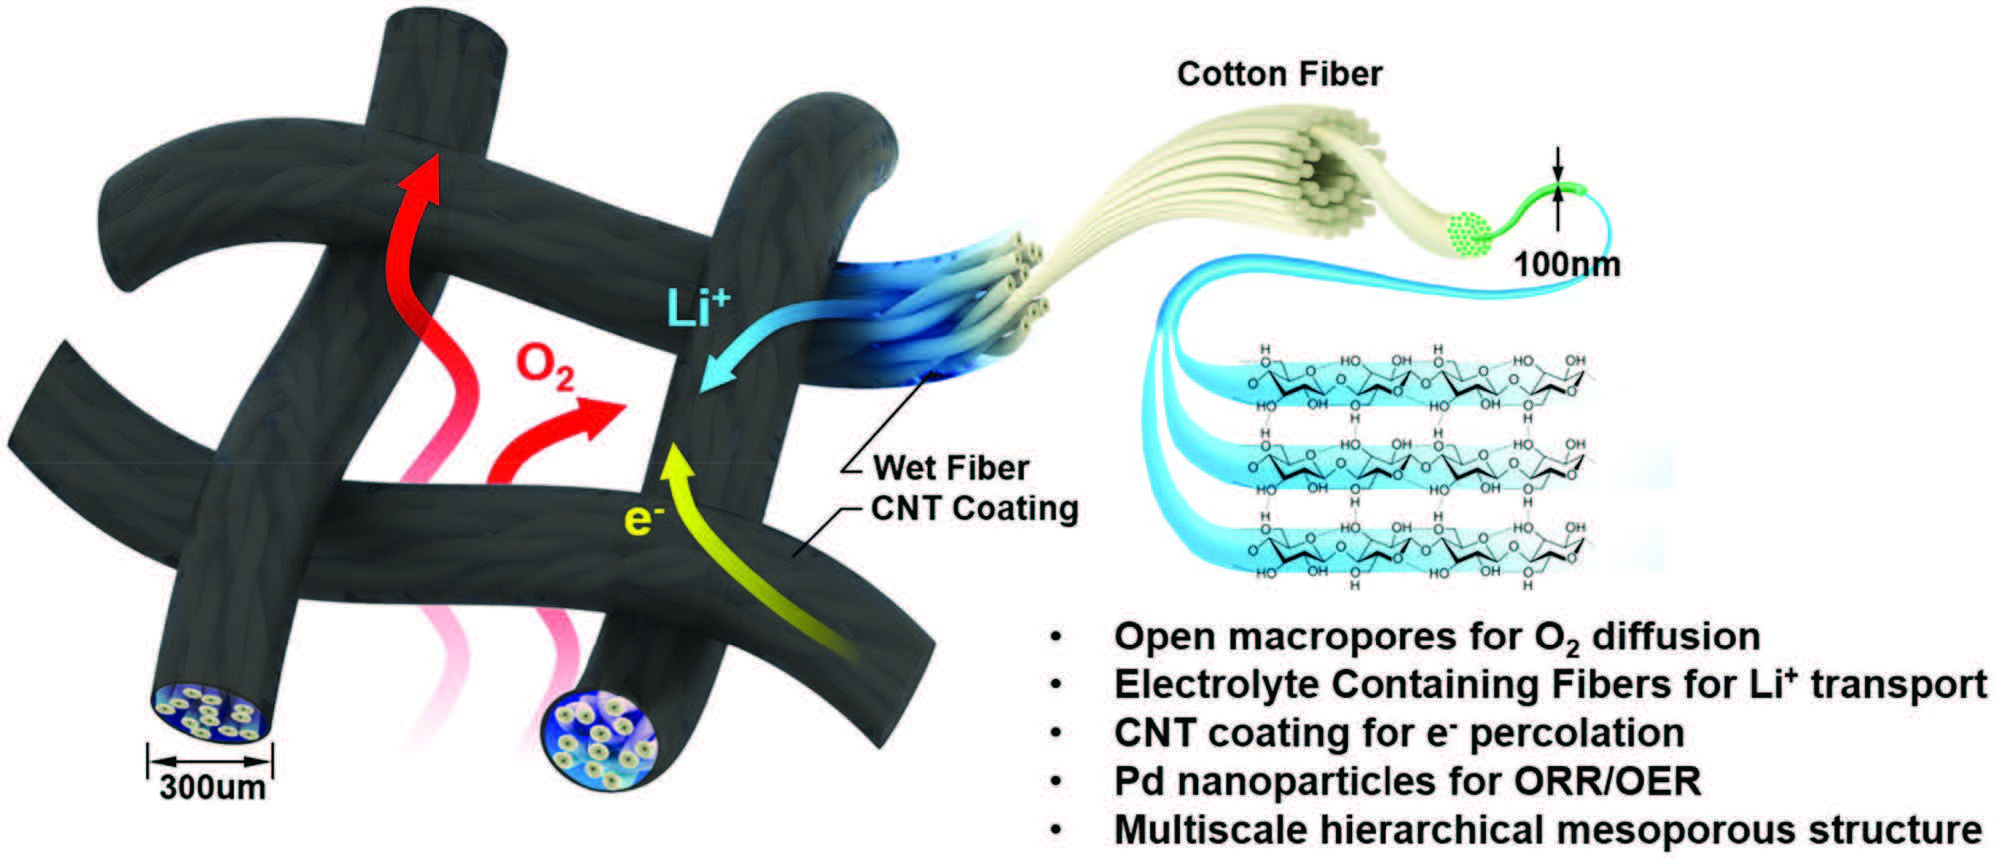 Schematic representation of the design and decoupled pathways (O2 gas, electrolyte) within the wet textile-based air cathode. The structure of the air cathode facilitates mass and ionic transport: O2 gas flows through the woven mesh, fast Li+ transport along the textile fibers, and rapid electron transfer along the CNT-coated textile surface. The coated textile, composed of intertwined nanofibers and microchannels, acts as a nanoionic device by facilitating both electrolyte and ionic (Li+) transport.